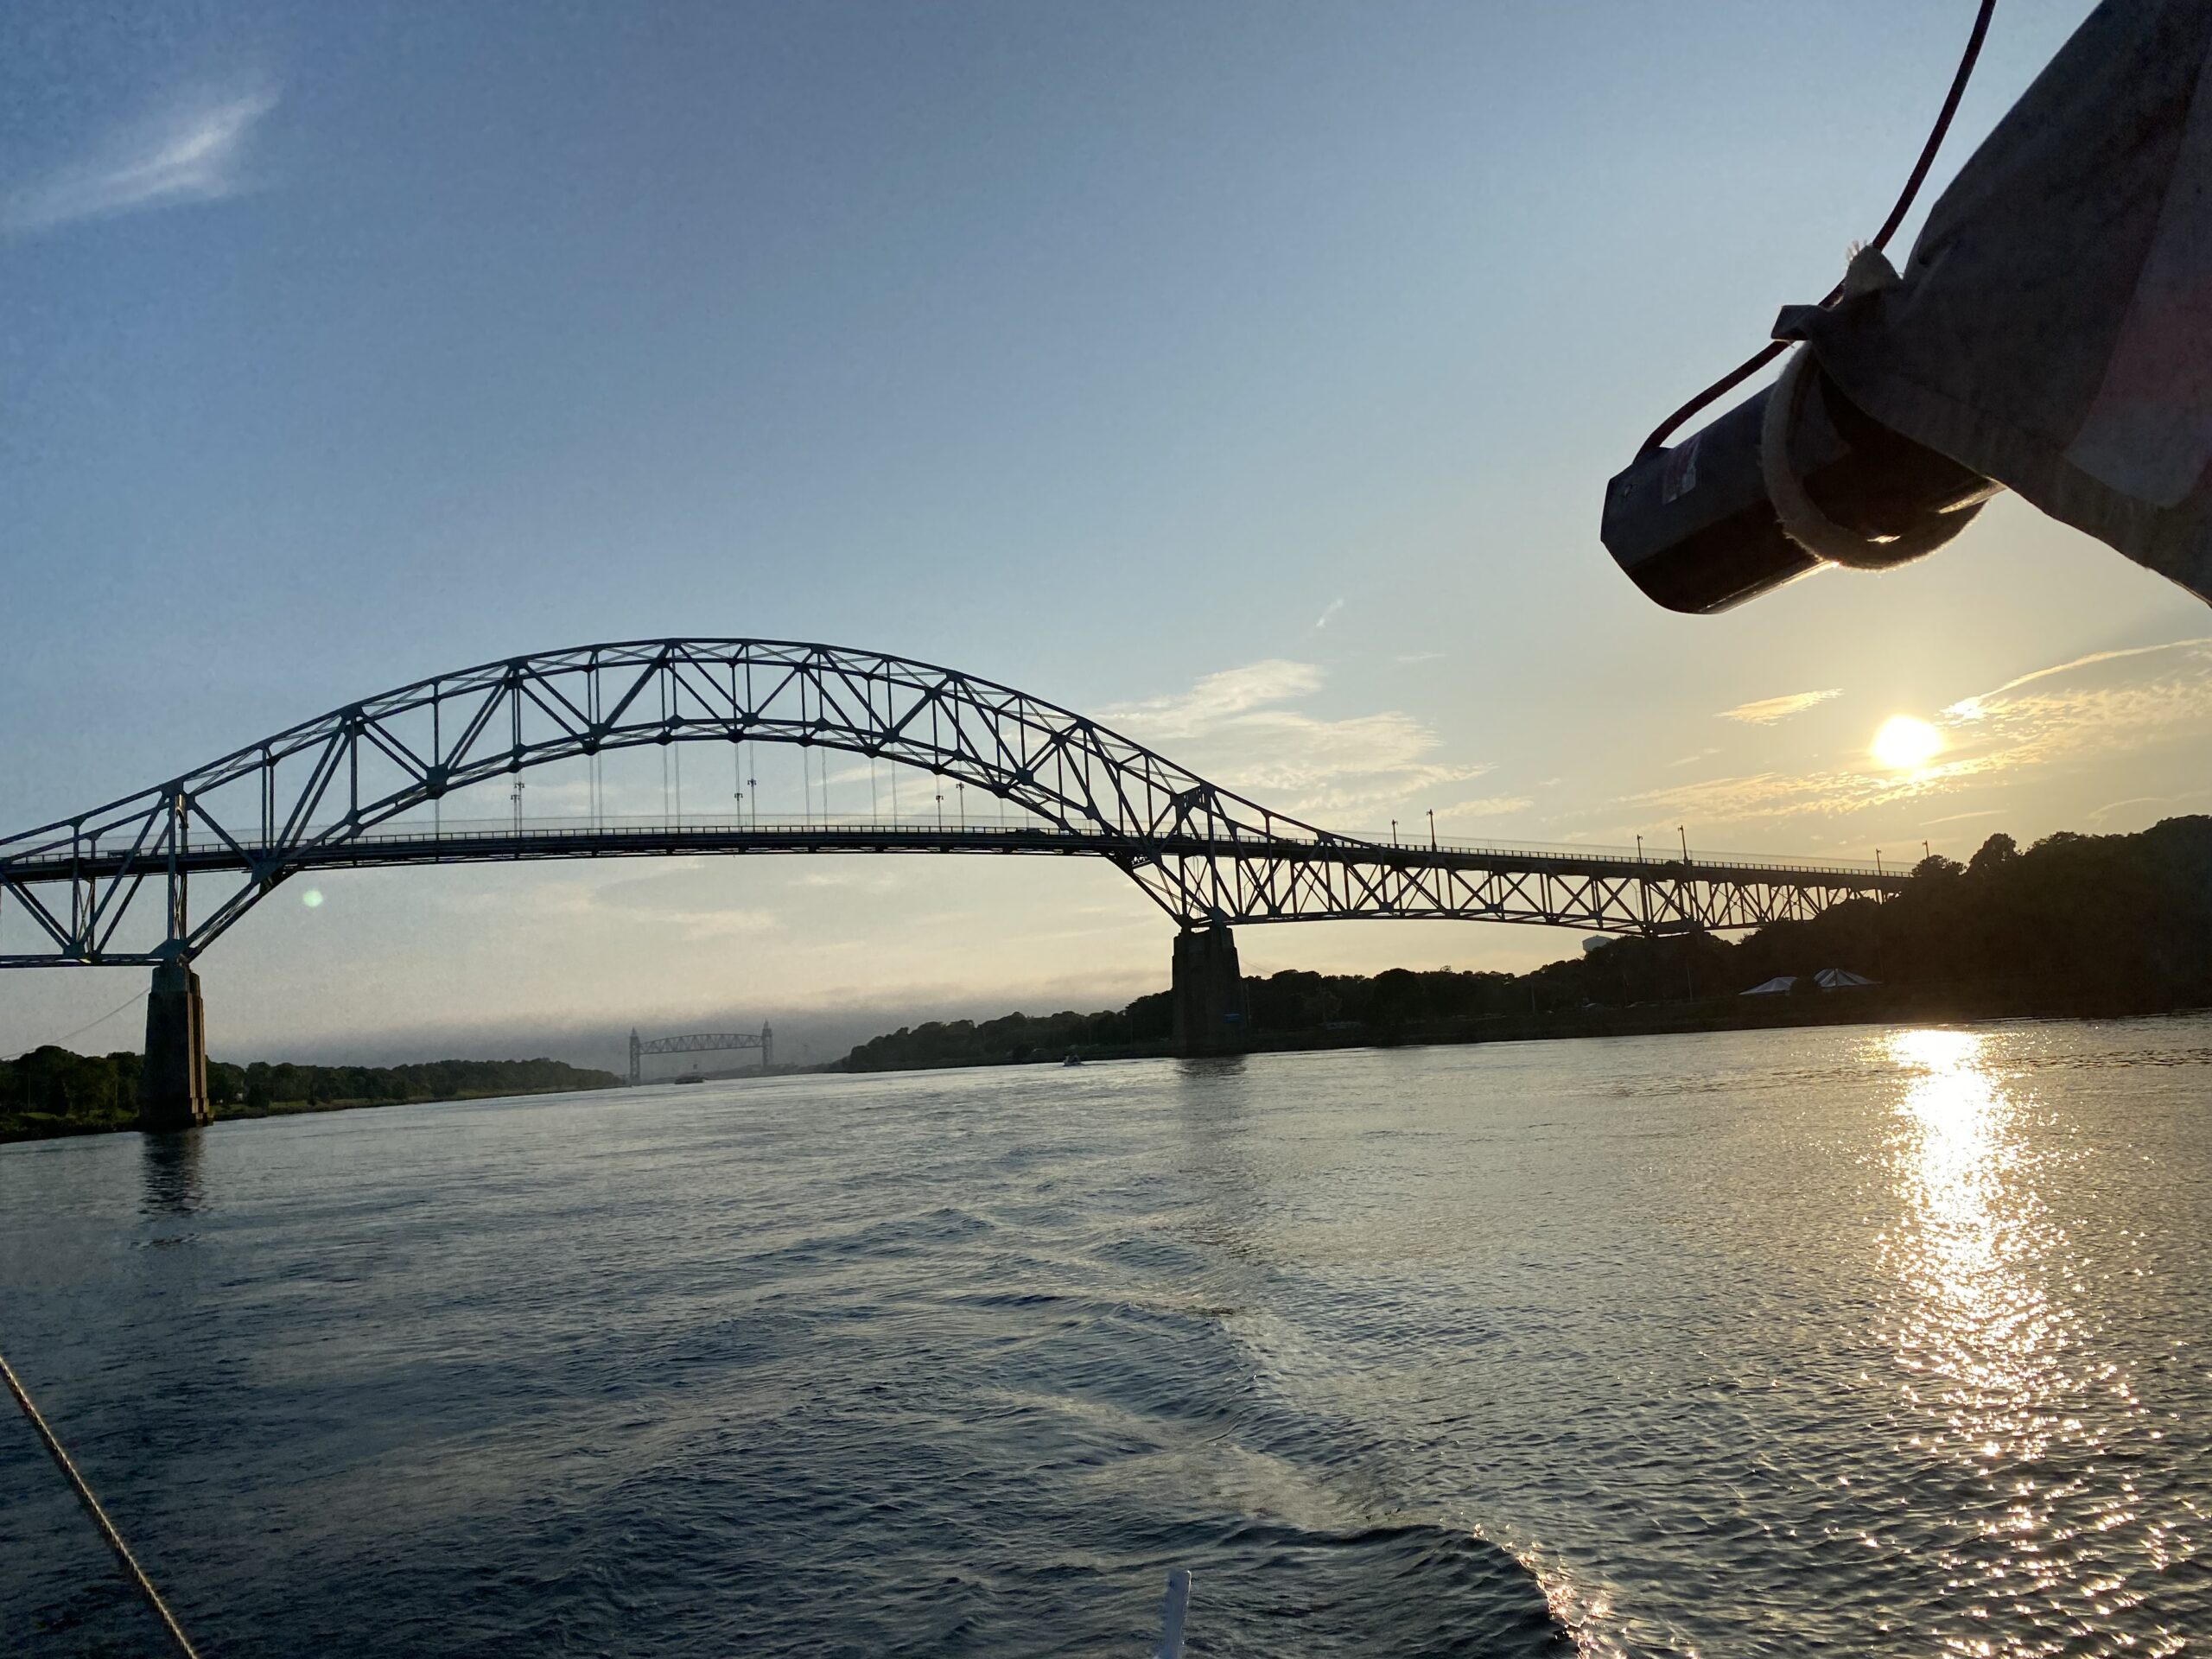 Transiting the Cape Cod Canal